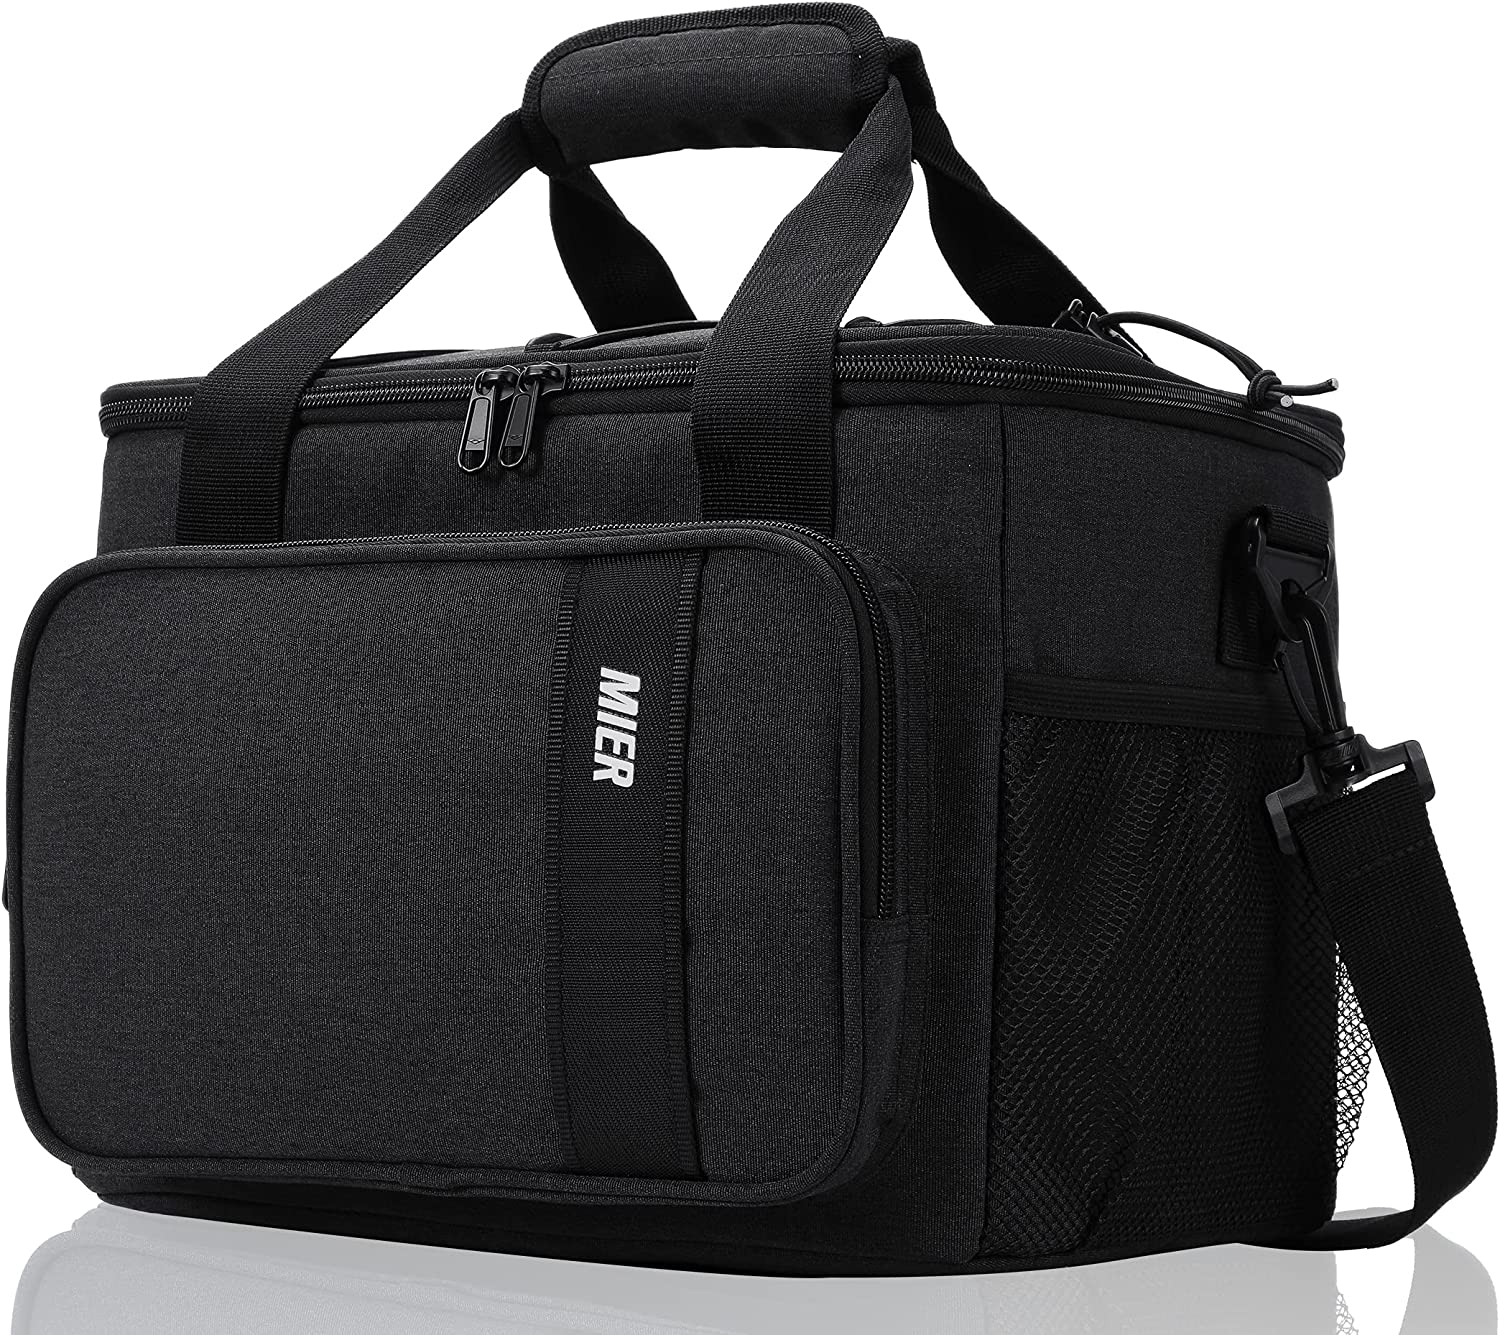 MIER Insulated Lunch Cooler Bag for Men Women, 24 Can Large Lunch Bags Tote Leakproof Lunchbox Coolers for Work Travel Picnic, Dark Gray